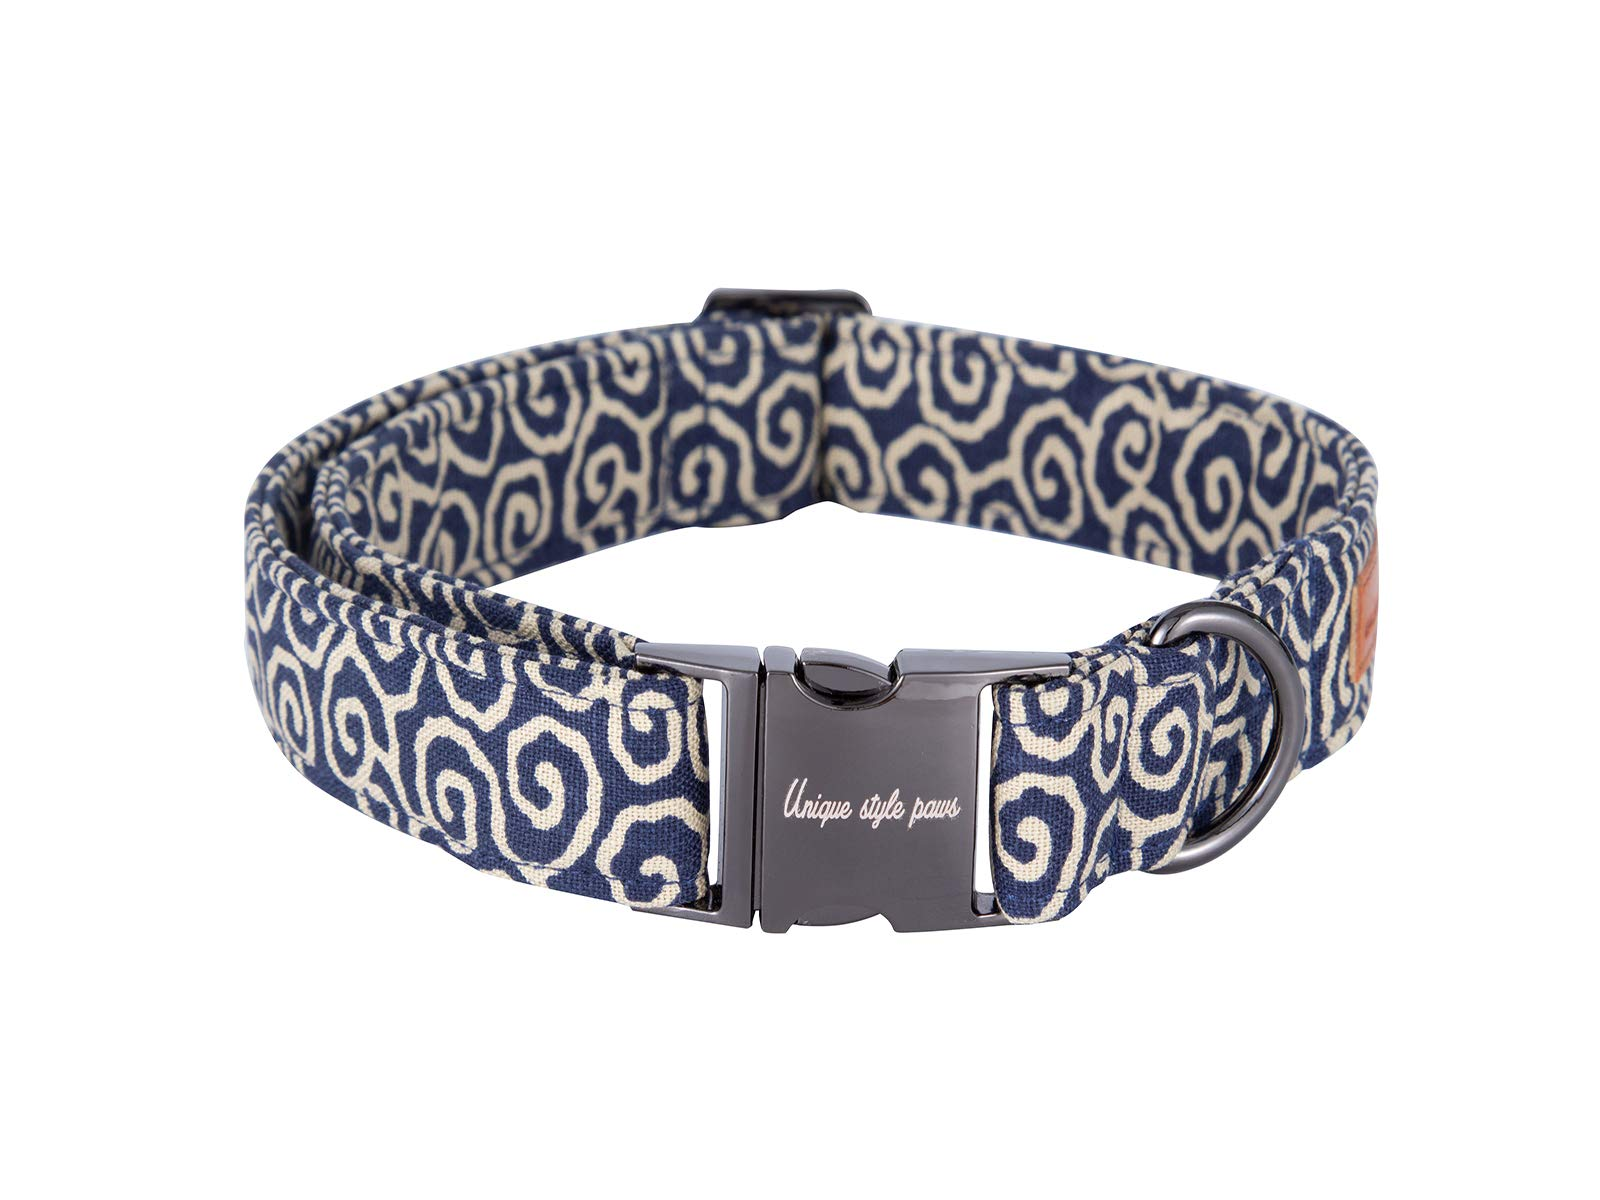 Unique-style-paws-Christmas-Dog-and-Cat-Collar-with-Bow-Pet-Gift-for-Dogs-and-Cats-Adjustable-SoftComfy-Cotton-Collars-6-Sizes-and-6-Patterns